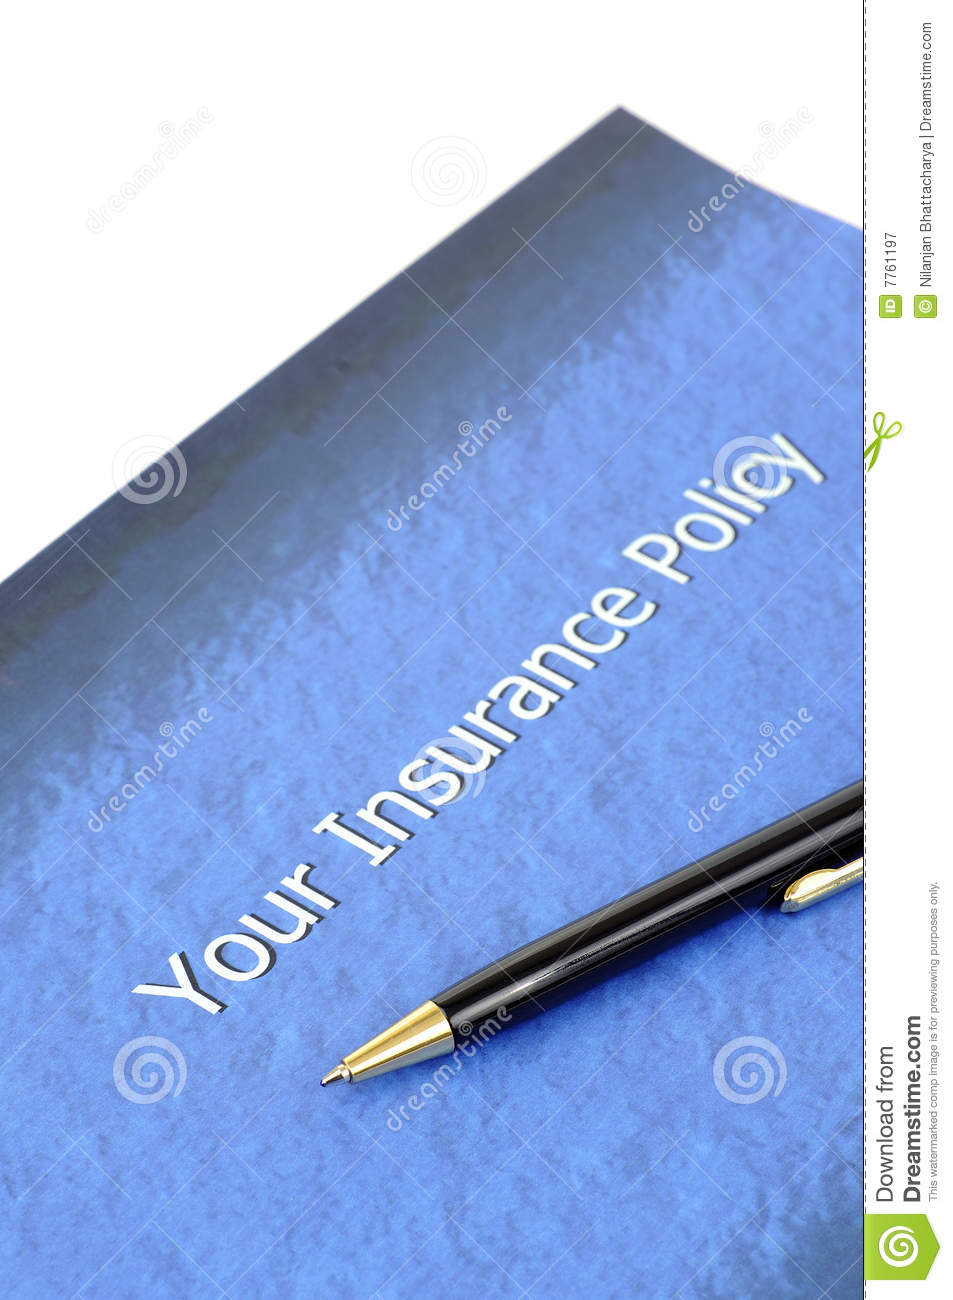 Insurance policy document stock image. Image of protect ...